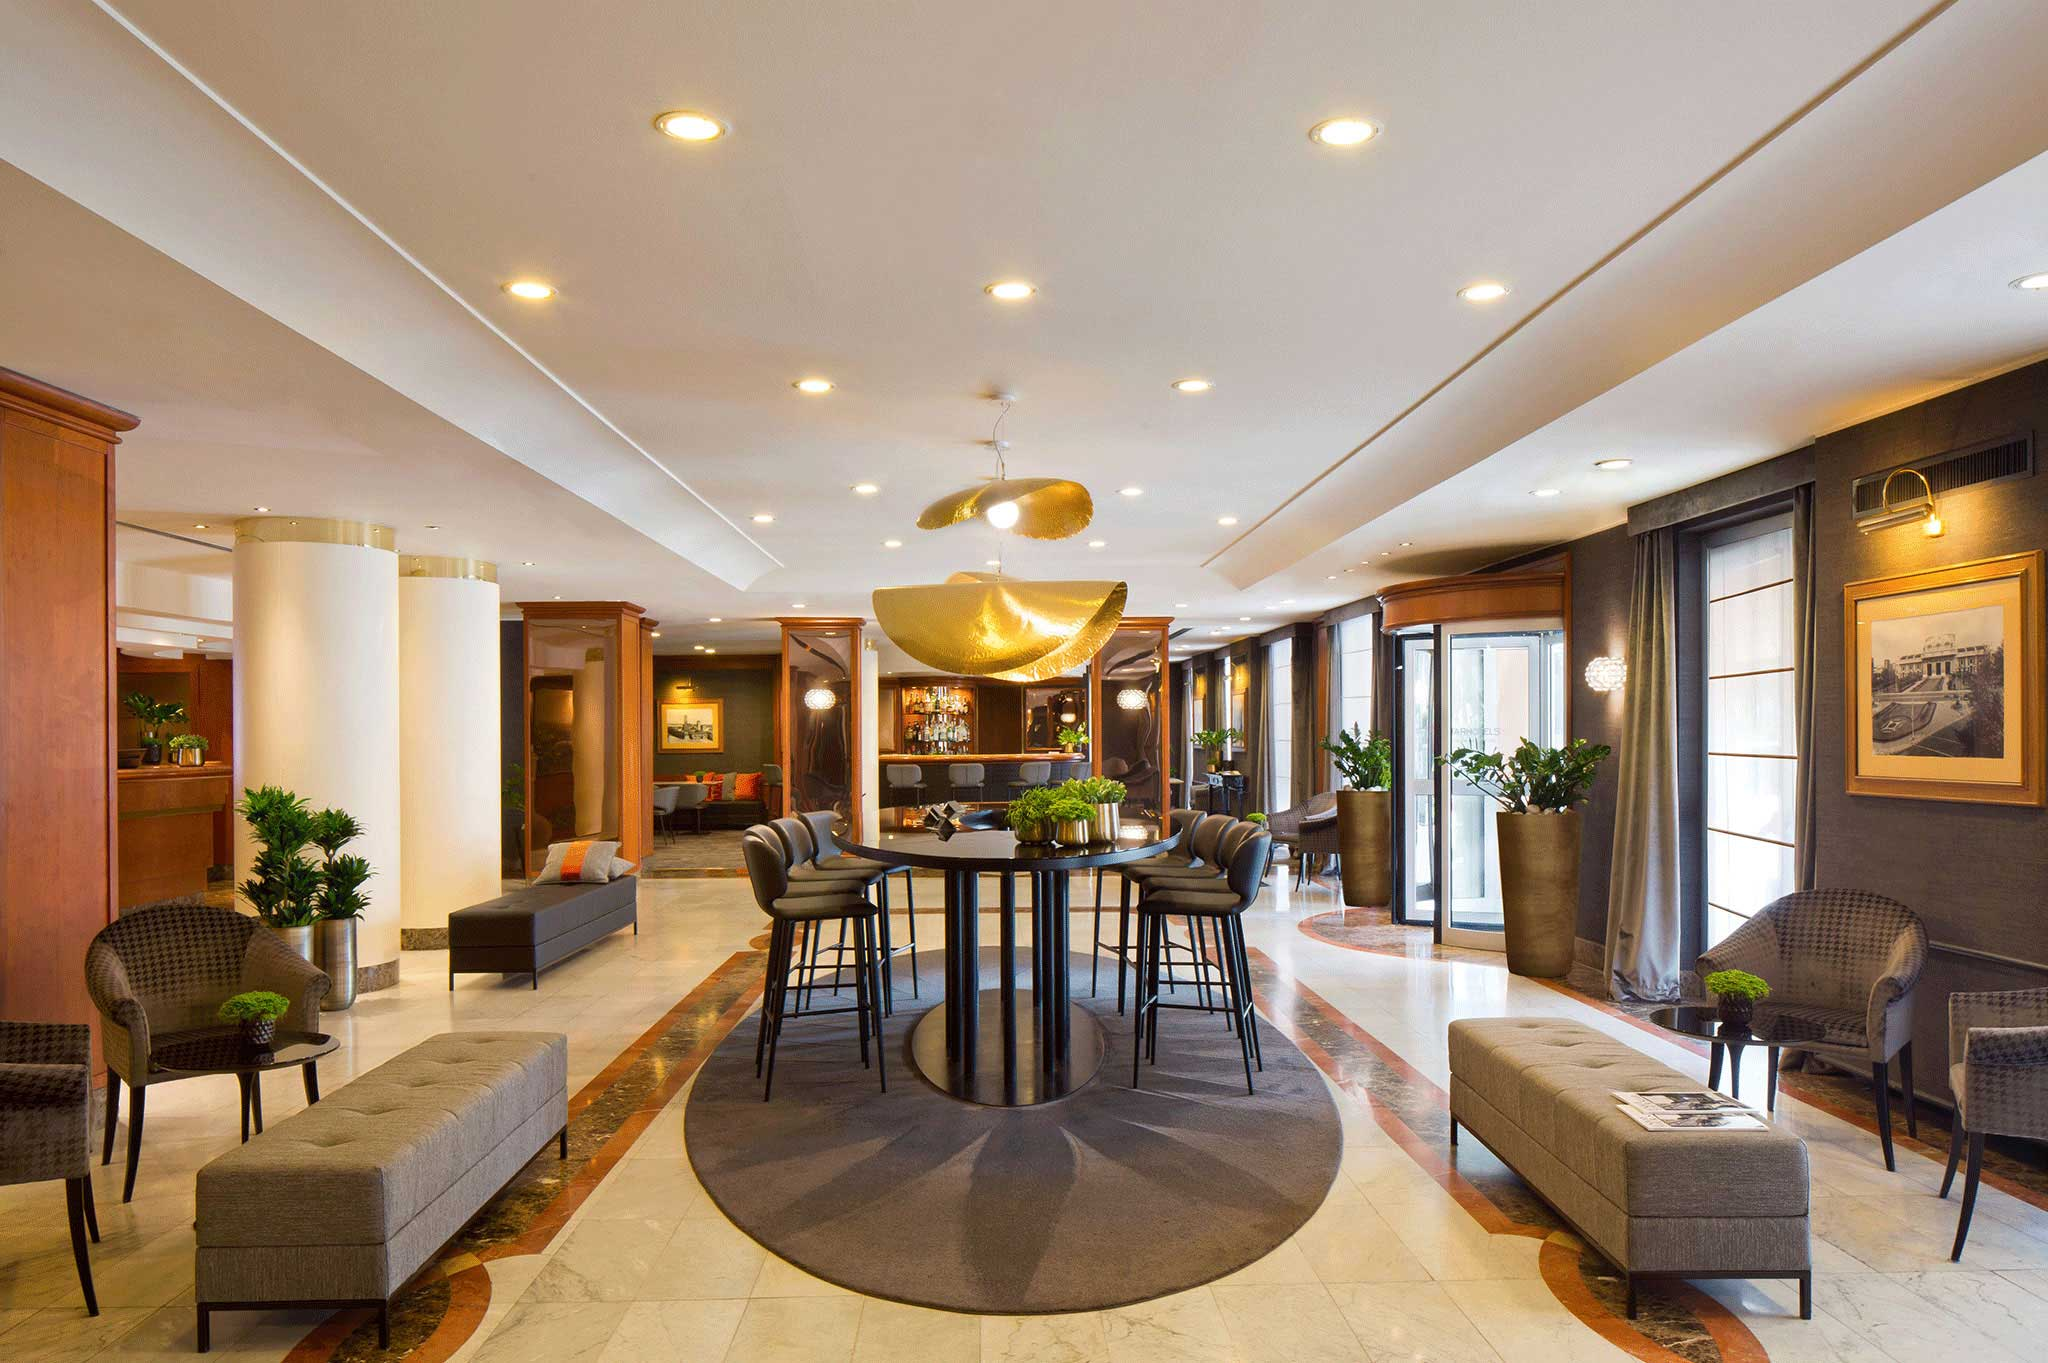 Starhotels Tourist Hotel In Milan Financial District Italy